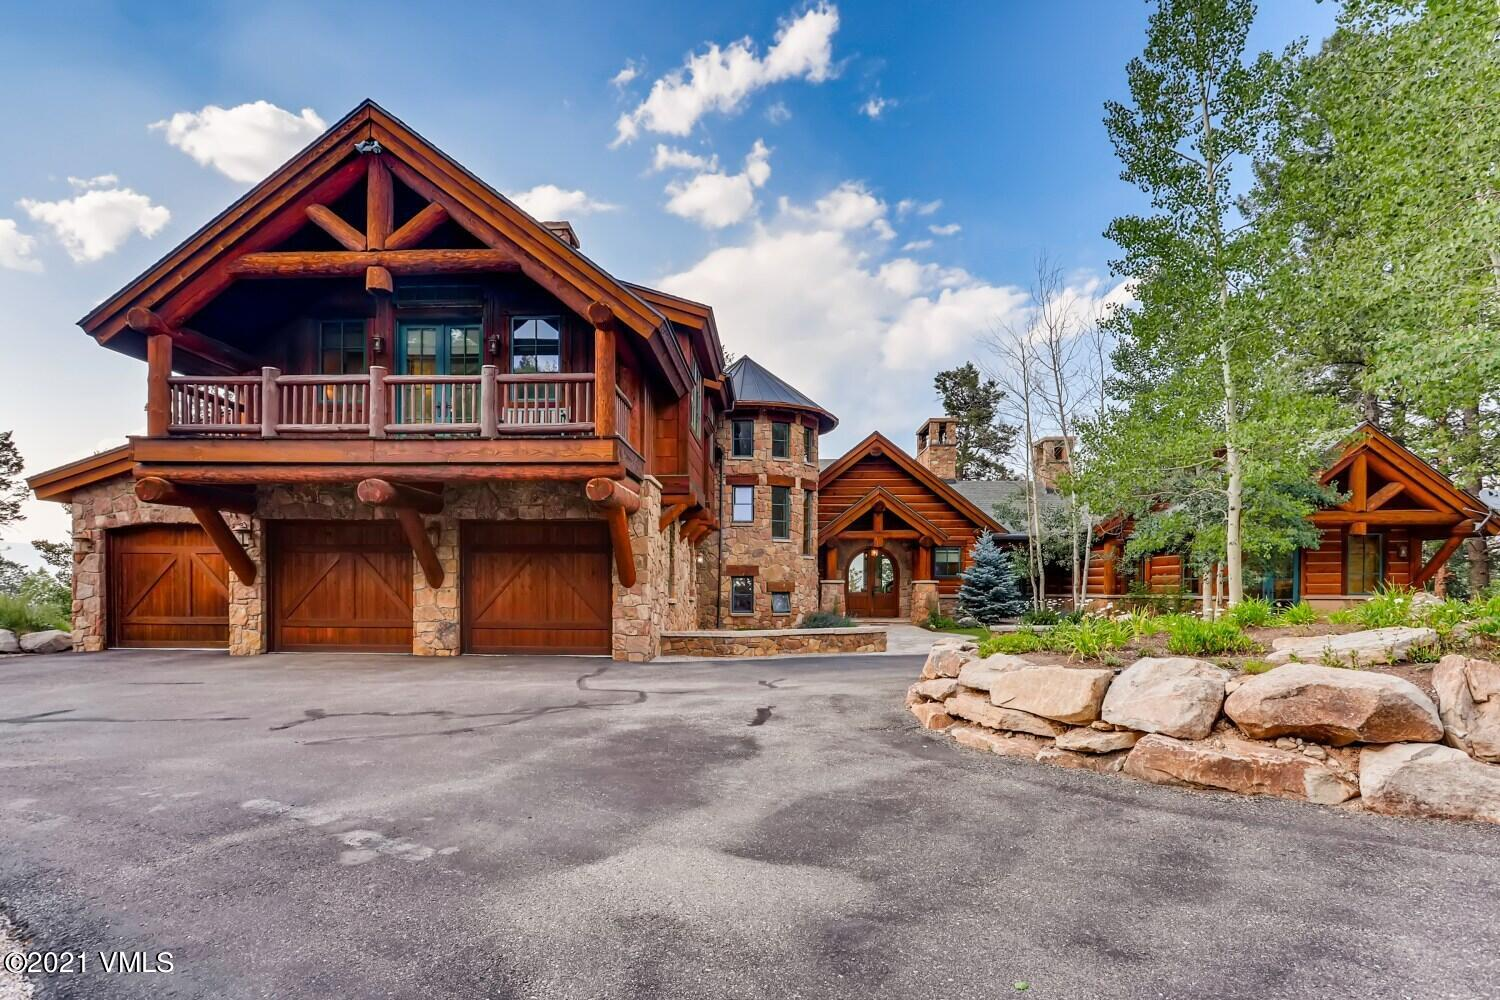 Located in the exclusive gated community of Travis Creek, this beautifully designed custom log home features 7907 sqft, 5 bedrooms, large beams, vaulted ceilings, & high-end finishes. This fine home, designed with an open floor plan perfect for entertaining, includes hearth/kitchen/dining combo, large great room, main level primary, & exercise room. The main level exterior includes a wrap-around deck, covered grill with dining, & covered TV area. The upper level includes a guest suite with sitting area & wet bar. The lower level has 3 bedrooms (and a bunk room), wet bar, family room, home theater, & wine cellar with dumb waiter to kitchen. Ground level exterior features a flagstone patio, recessed hot tub, water feature, fireplace, children's play cabin with bunks, fire pit, & separate deck. Wired for sound & security system. HOA dues include security gate, snow removal, & trash collection. Nearby Red Sky Golf Club boasts 2 ranked golf courses, clubhouse dining, tennis, & swimming. Property is being sold furnished with the exception of the artwork, personal items,  personal accessories, and select exclusions. The Sellers shall provide a list of exclusions which will accompany this listing. Sellers also are in the process of replacing the following appliances: refrigerator in kitchen, warming drawer in kitchen, and ice maker in downstairs family room.